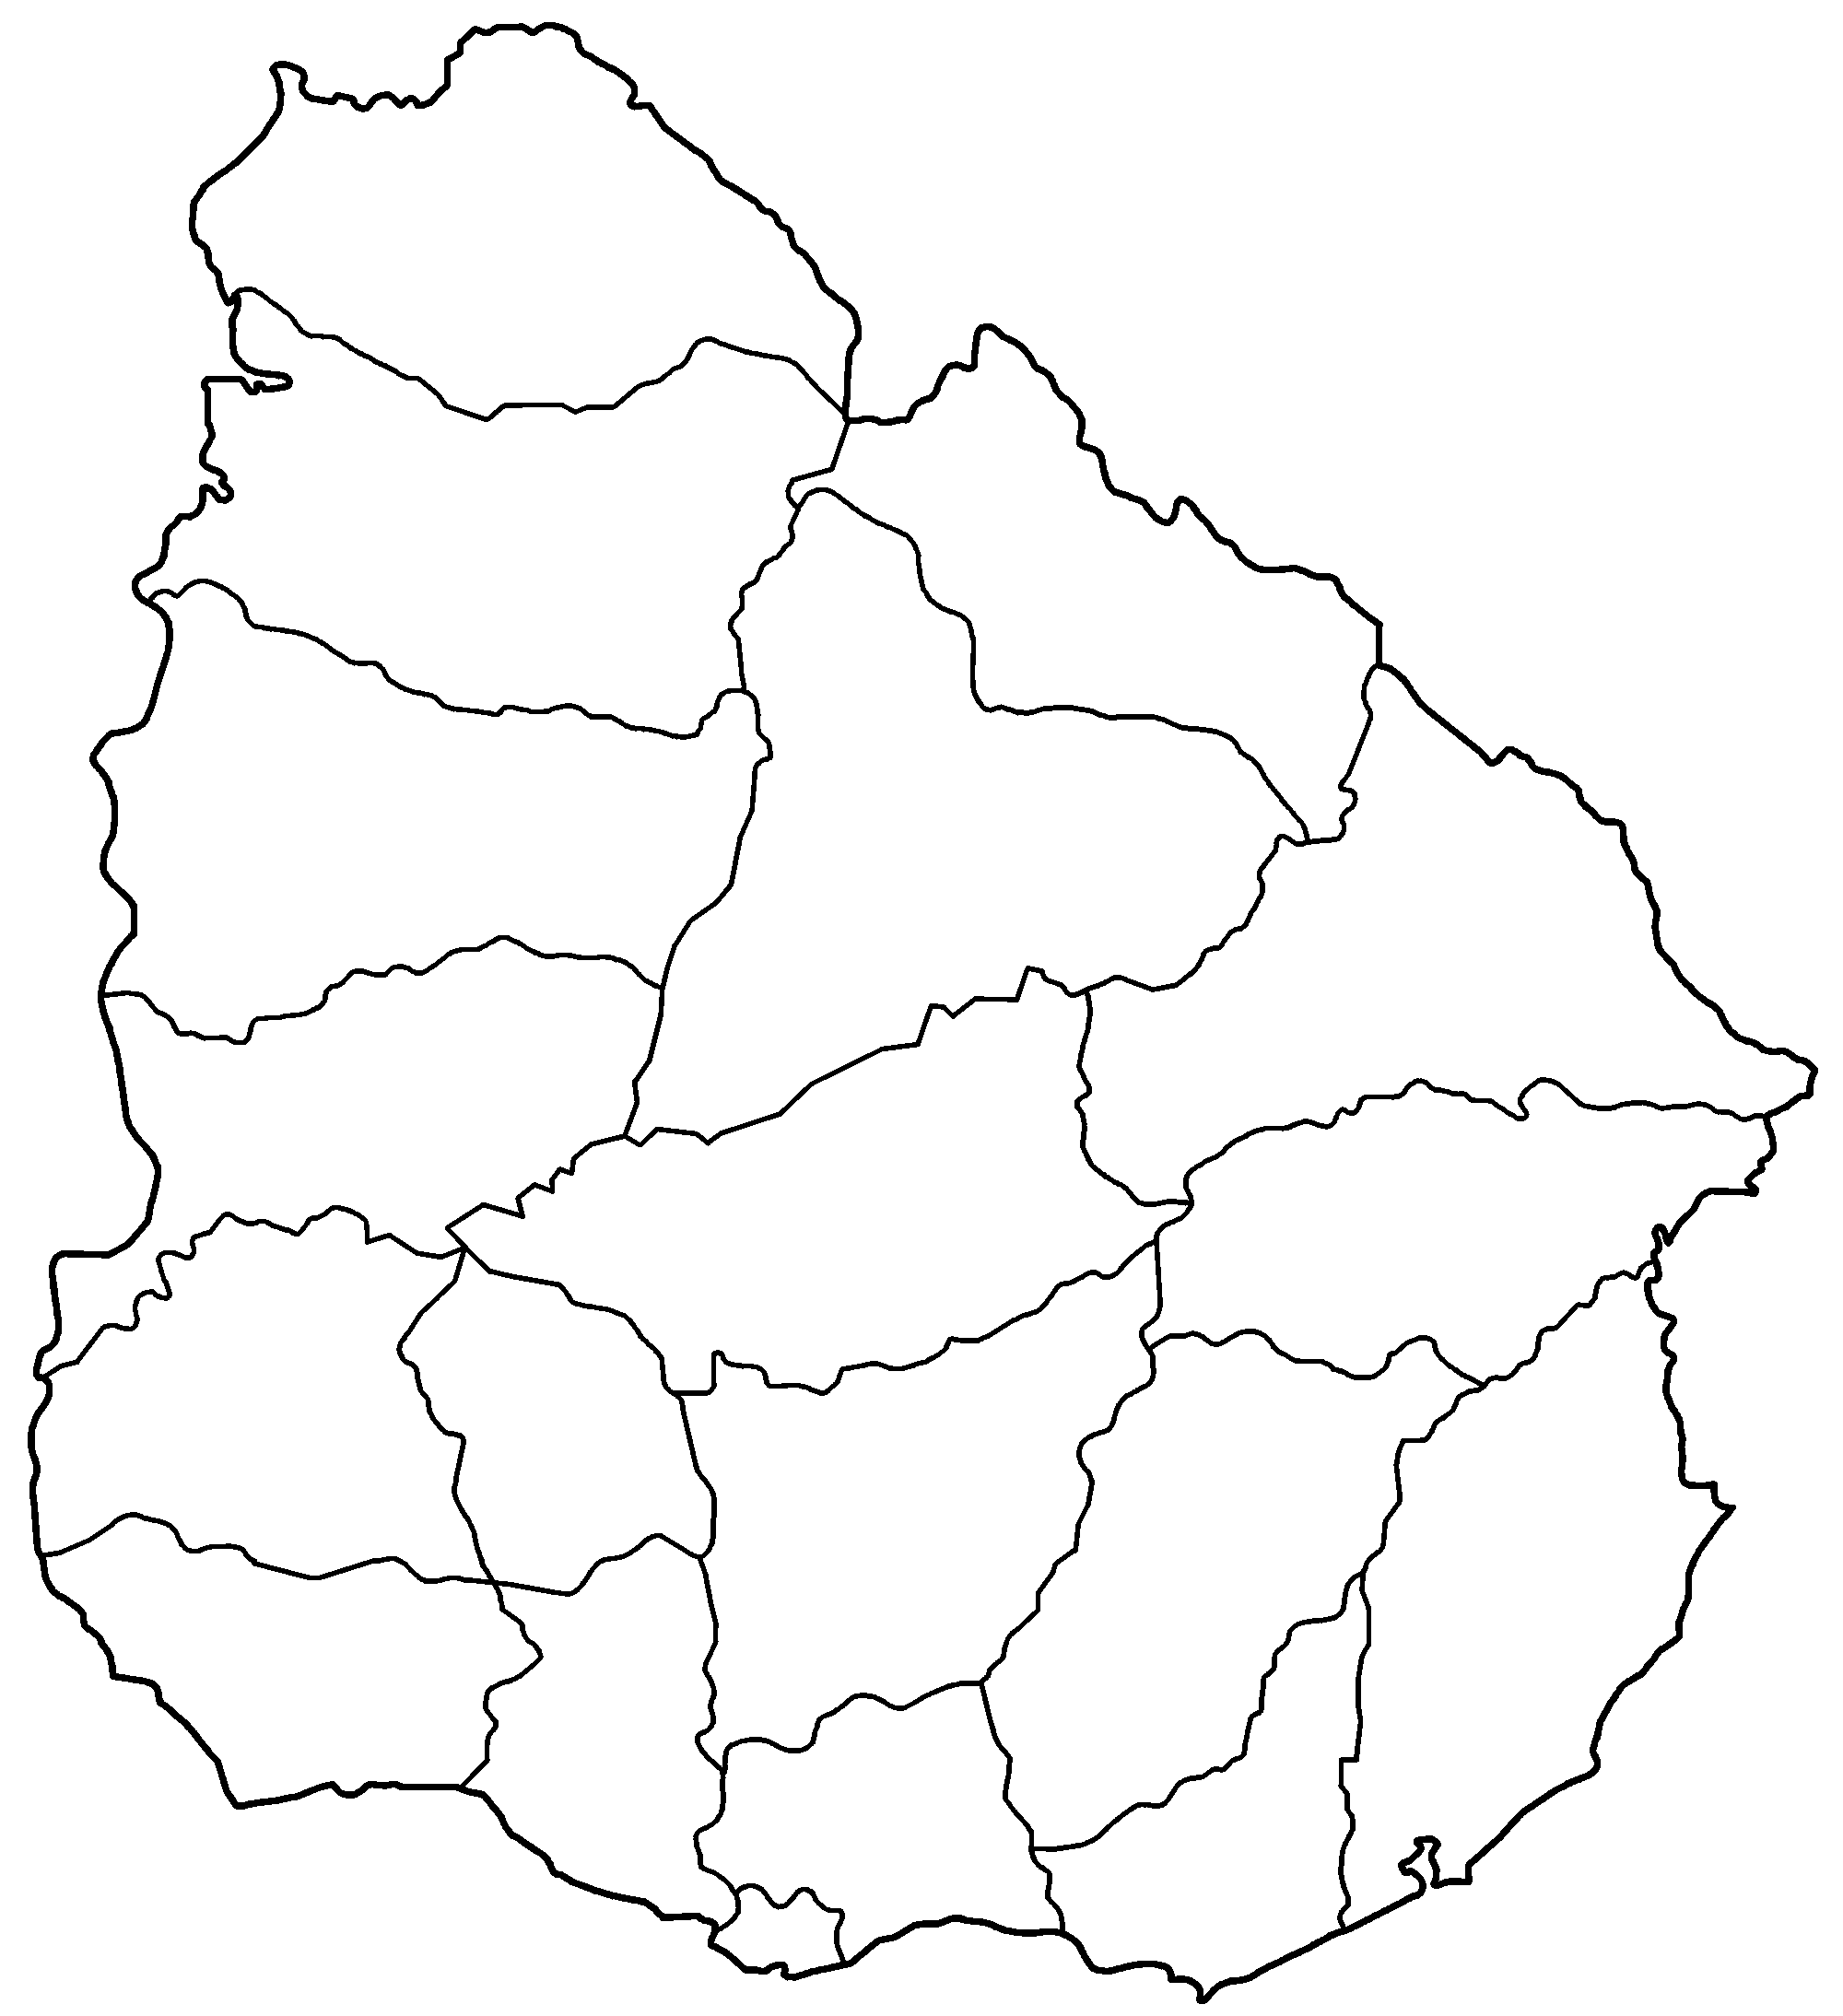 FileUruguay Departments Blankpng Wikimedia Commons - Uruguay map png